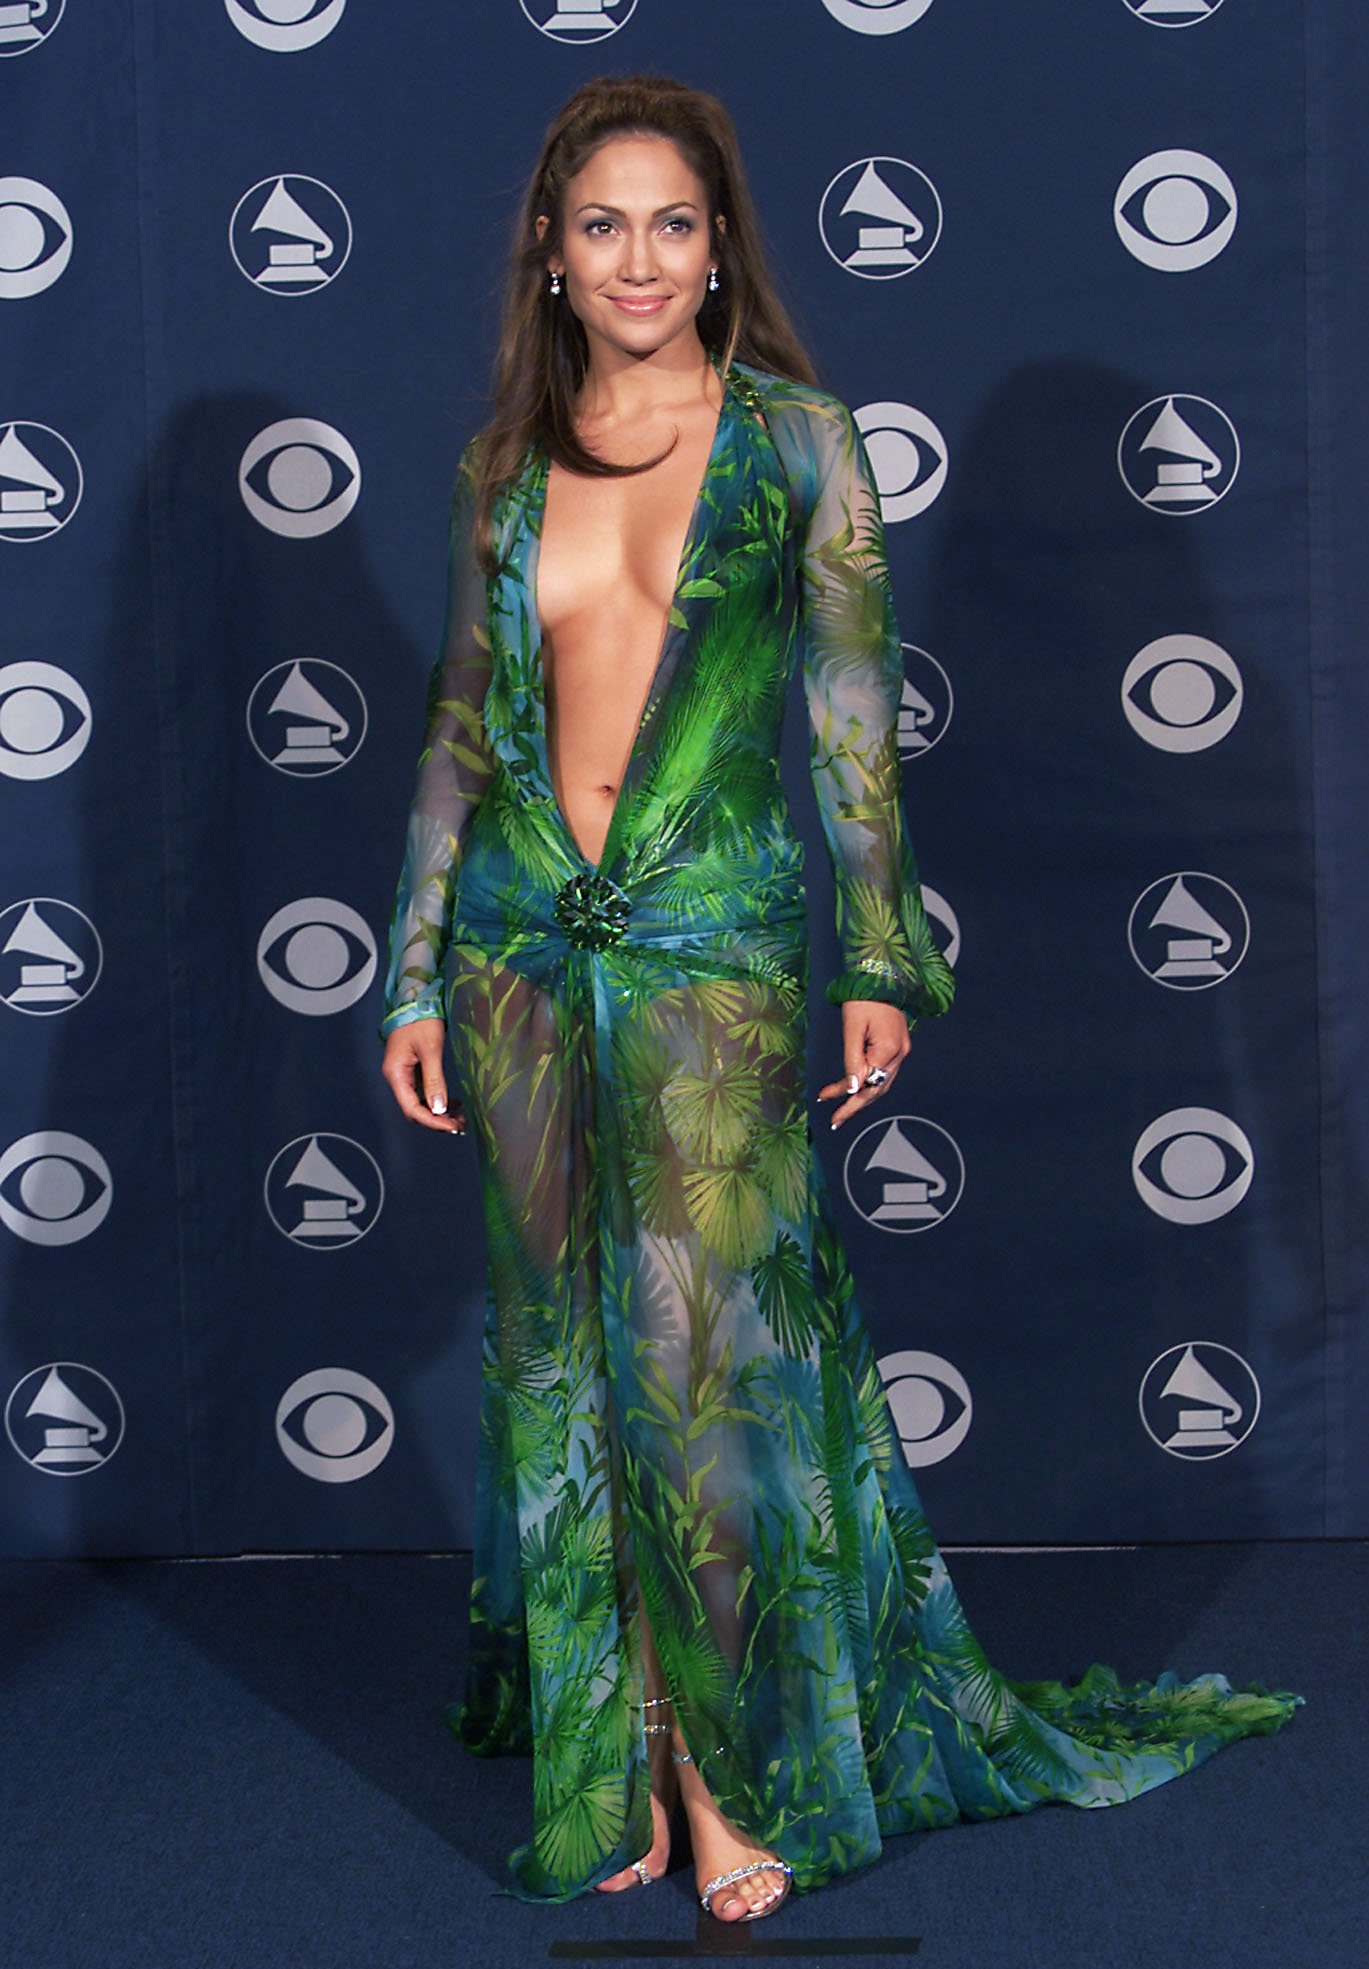 Jennifer Lopez in Versace at the 42nd Grammy Awards held in Los Angeles, CA on February 23, 2000. | Source: Getty Images